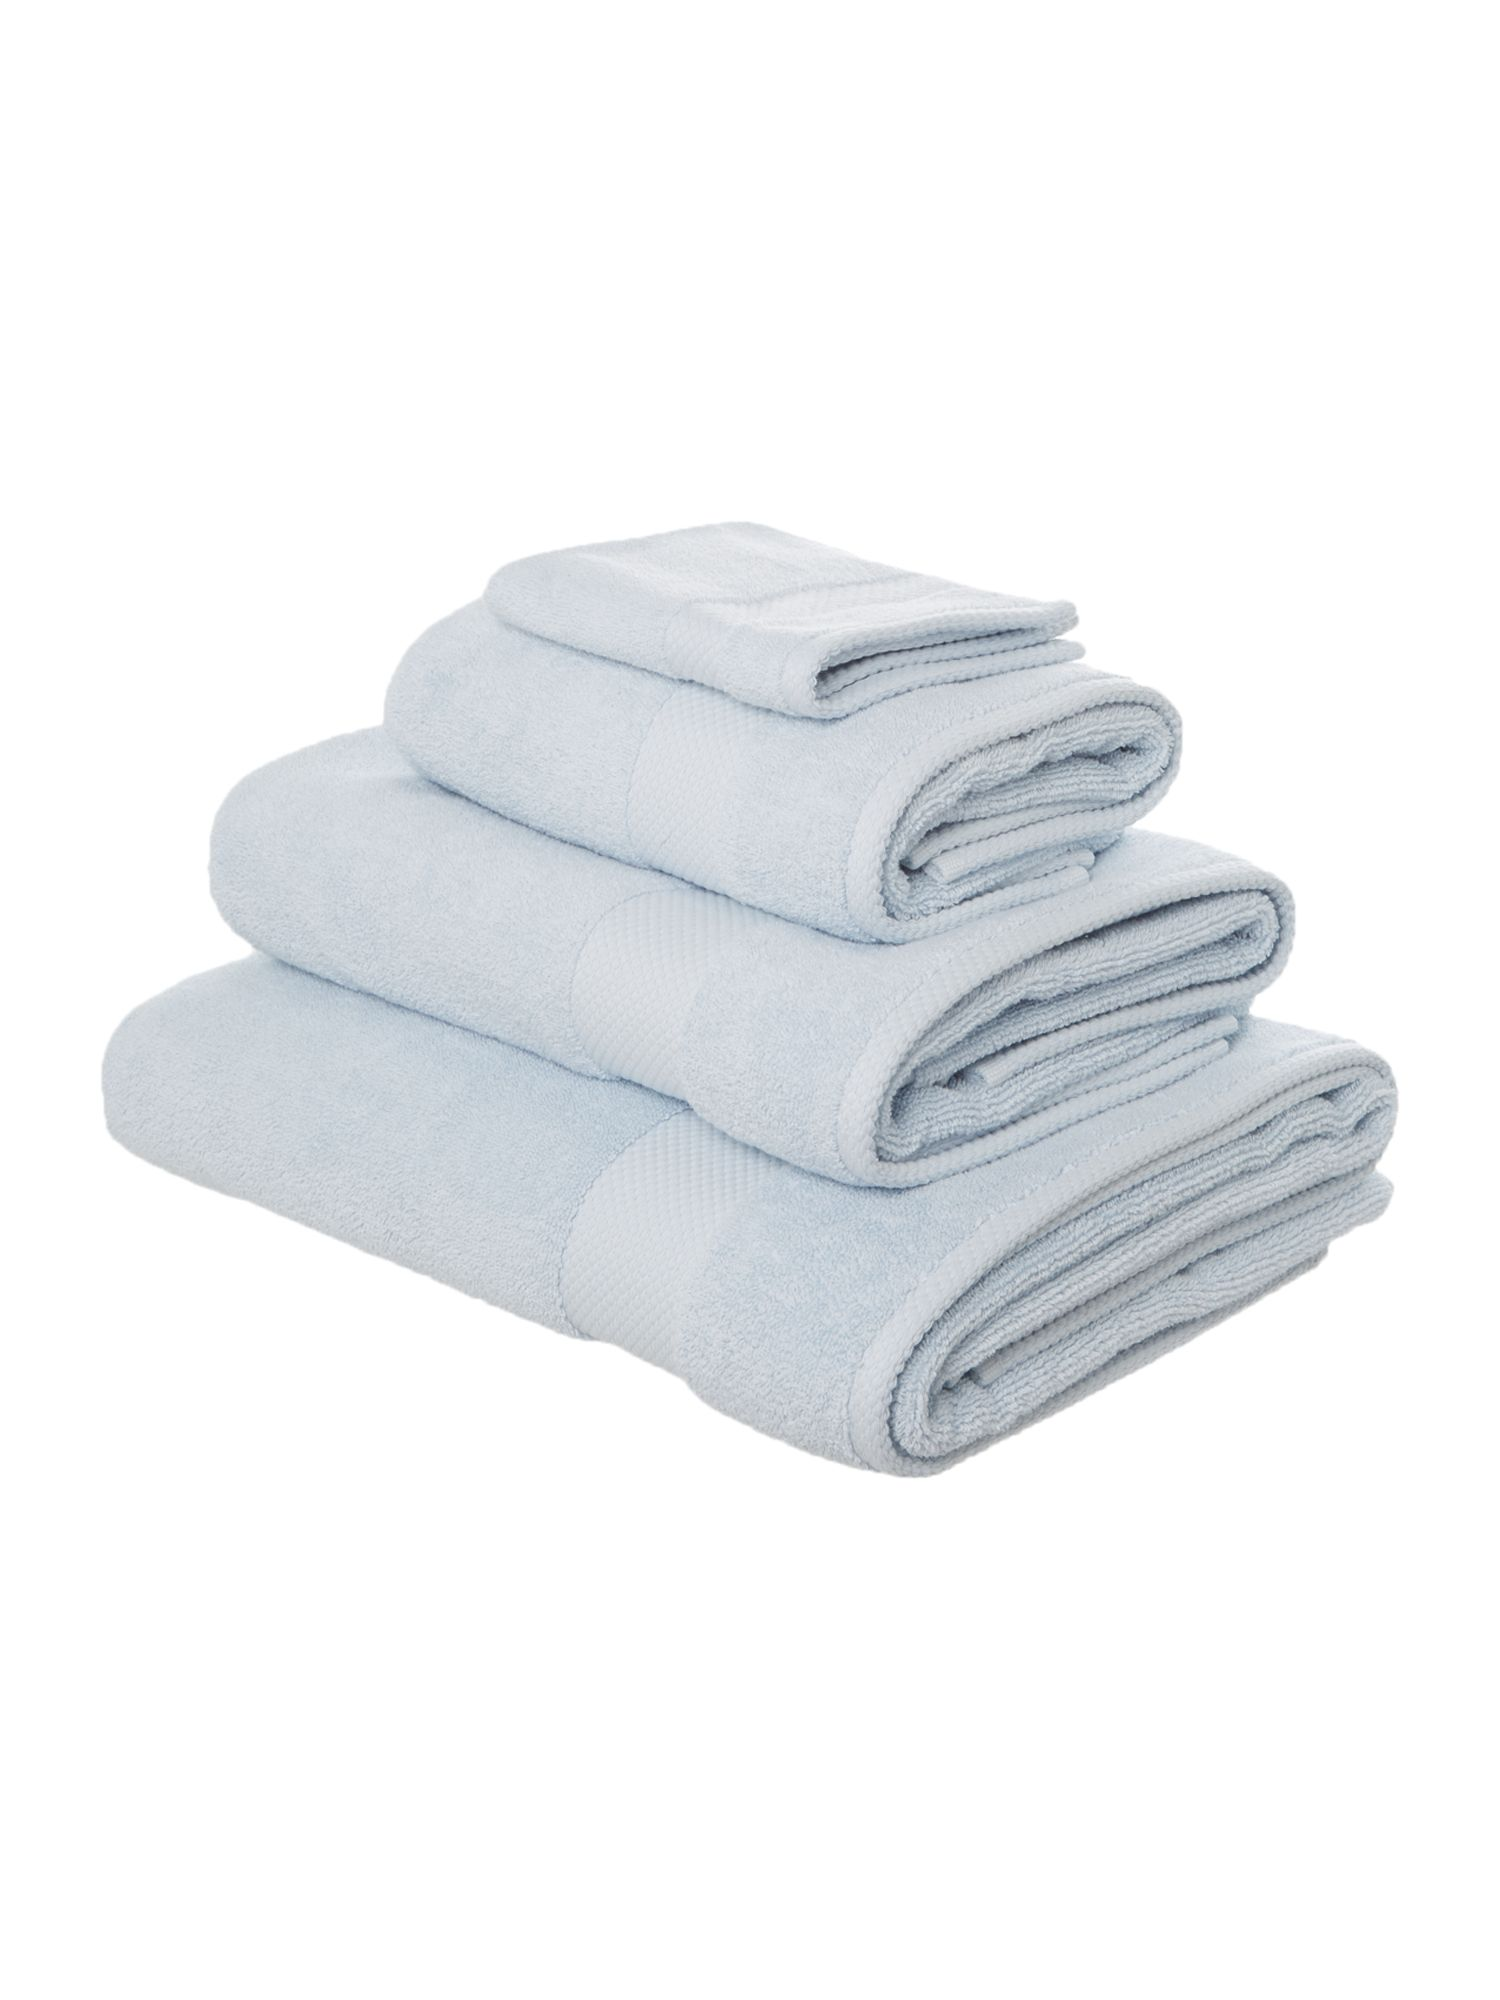 Egyptian cotton sky blue towels